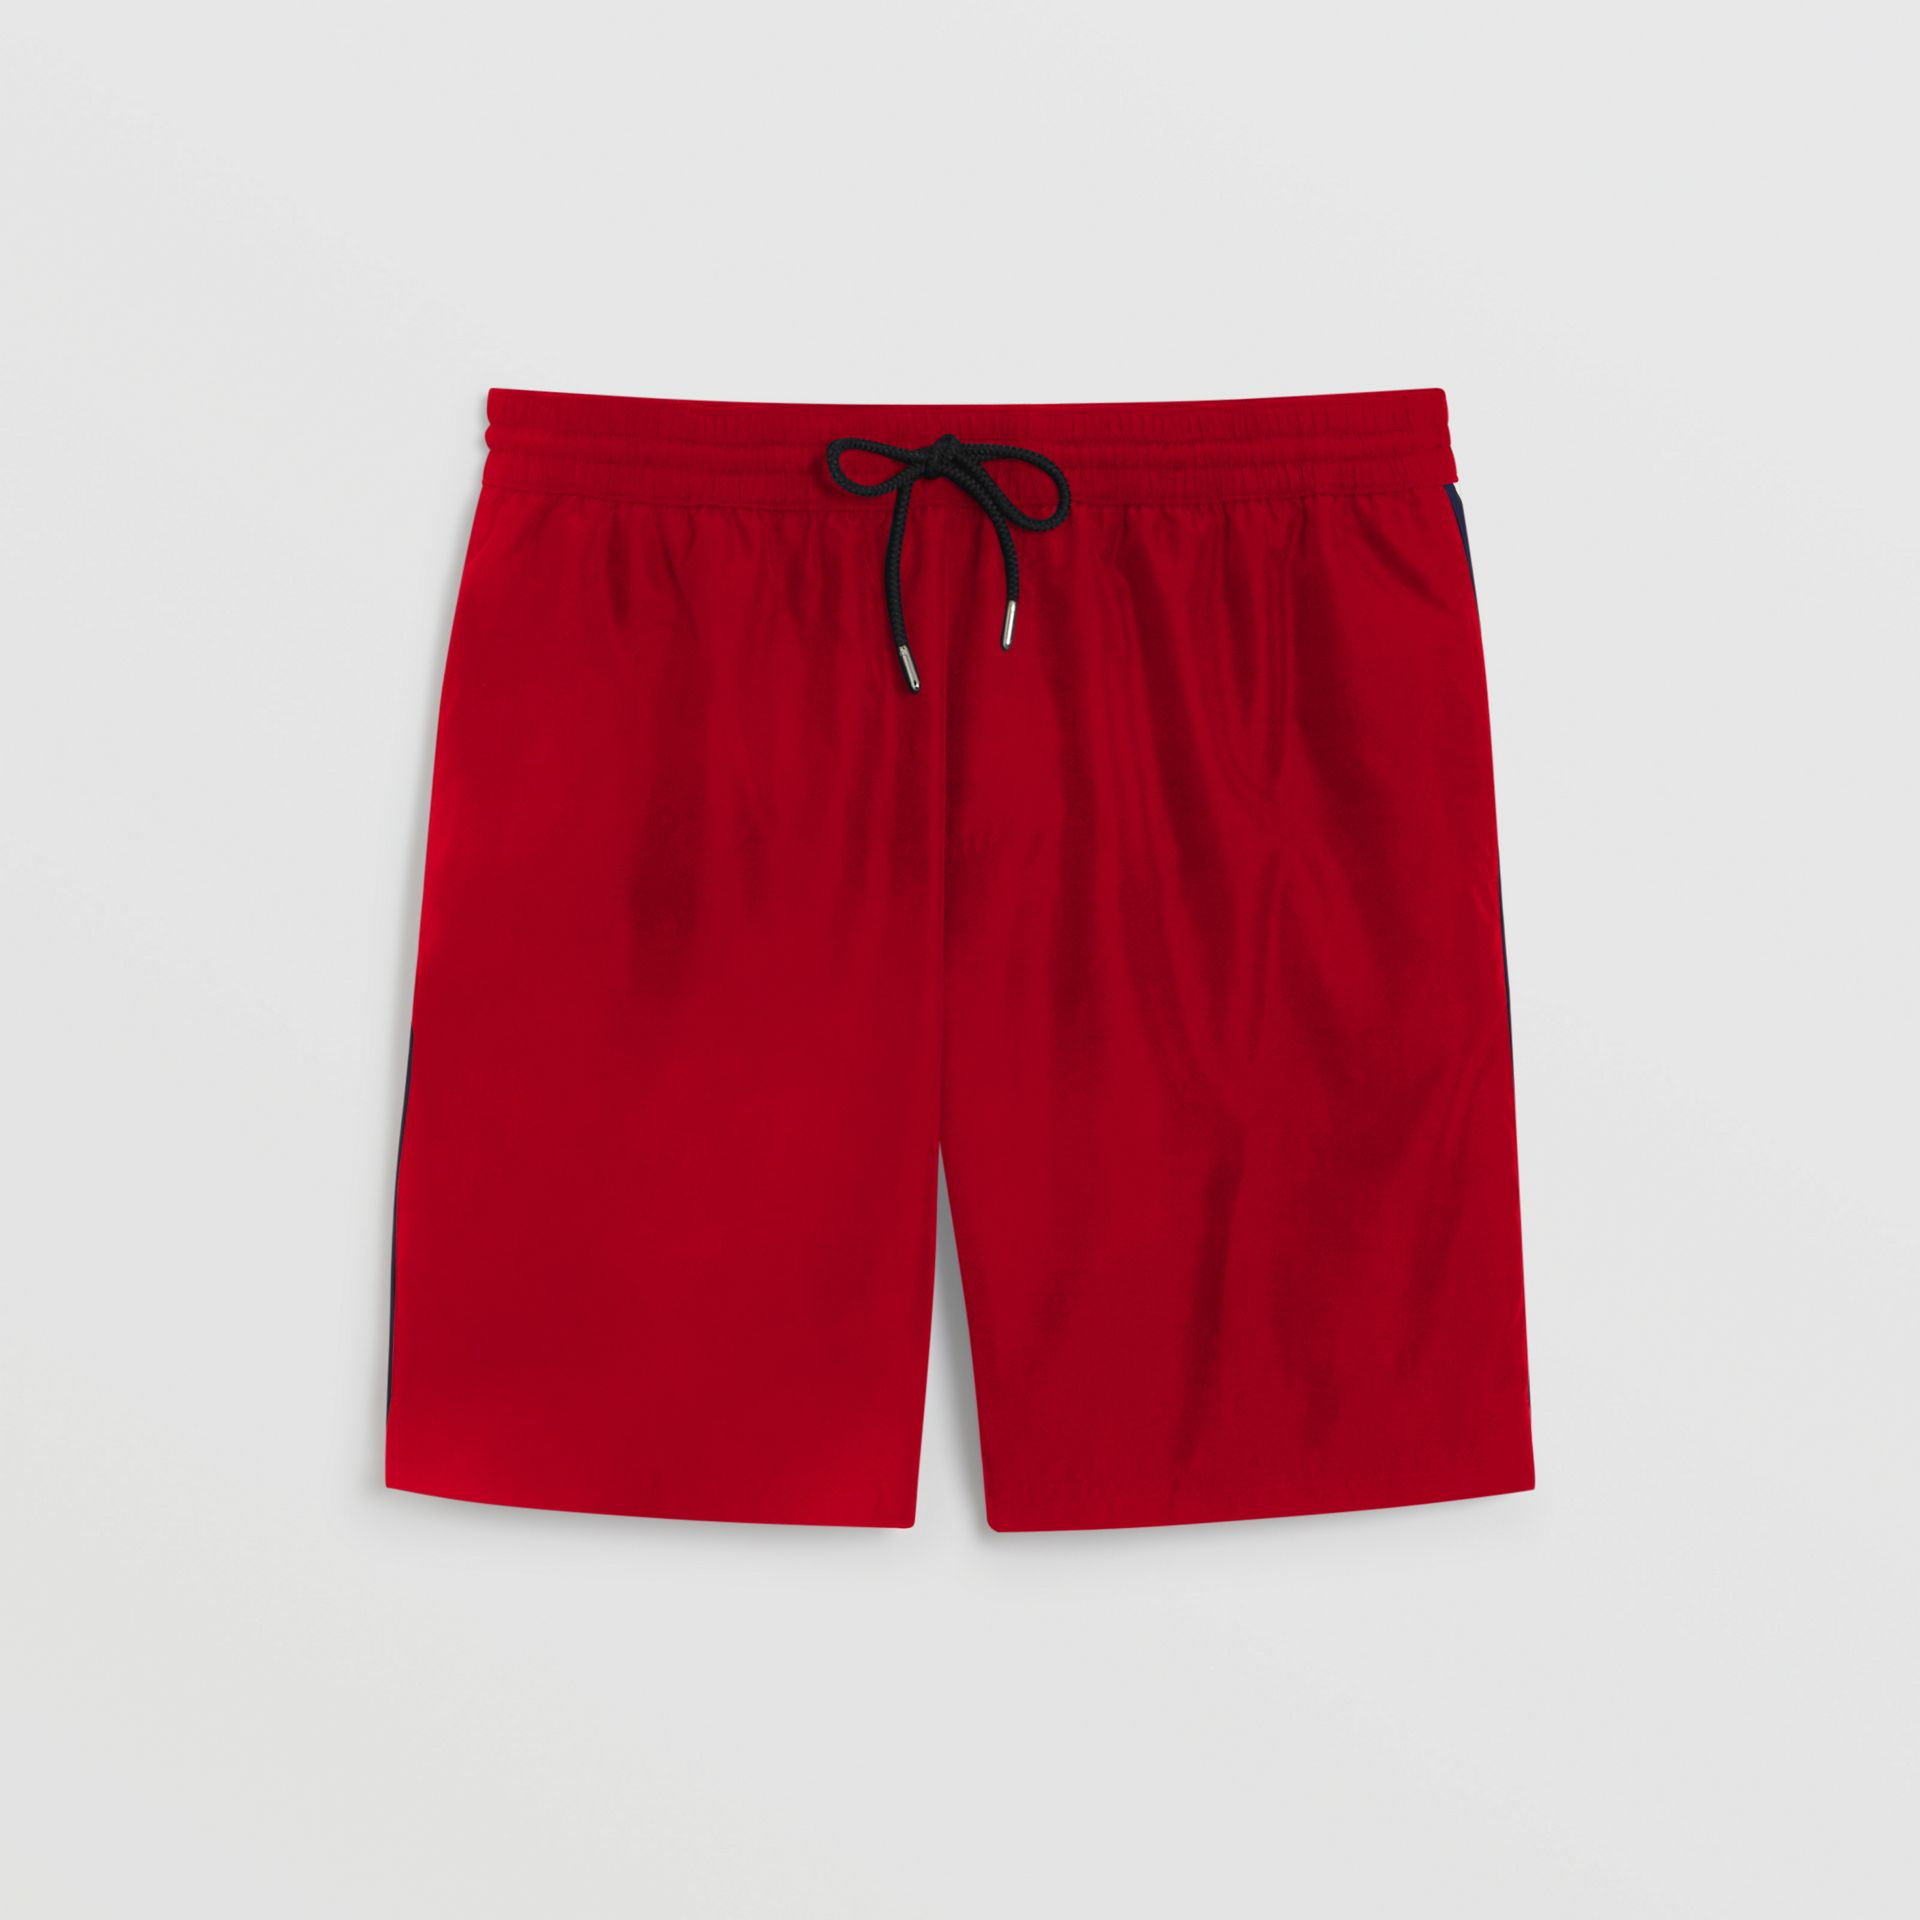 Short de bain avec cordon de serrage (Rouge Parade) - Homme | Burberry - photo de la galerie 2